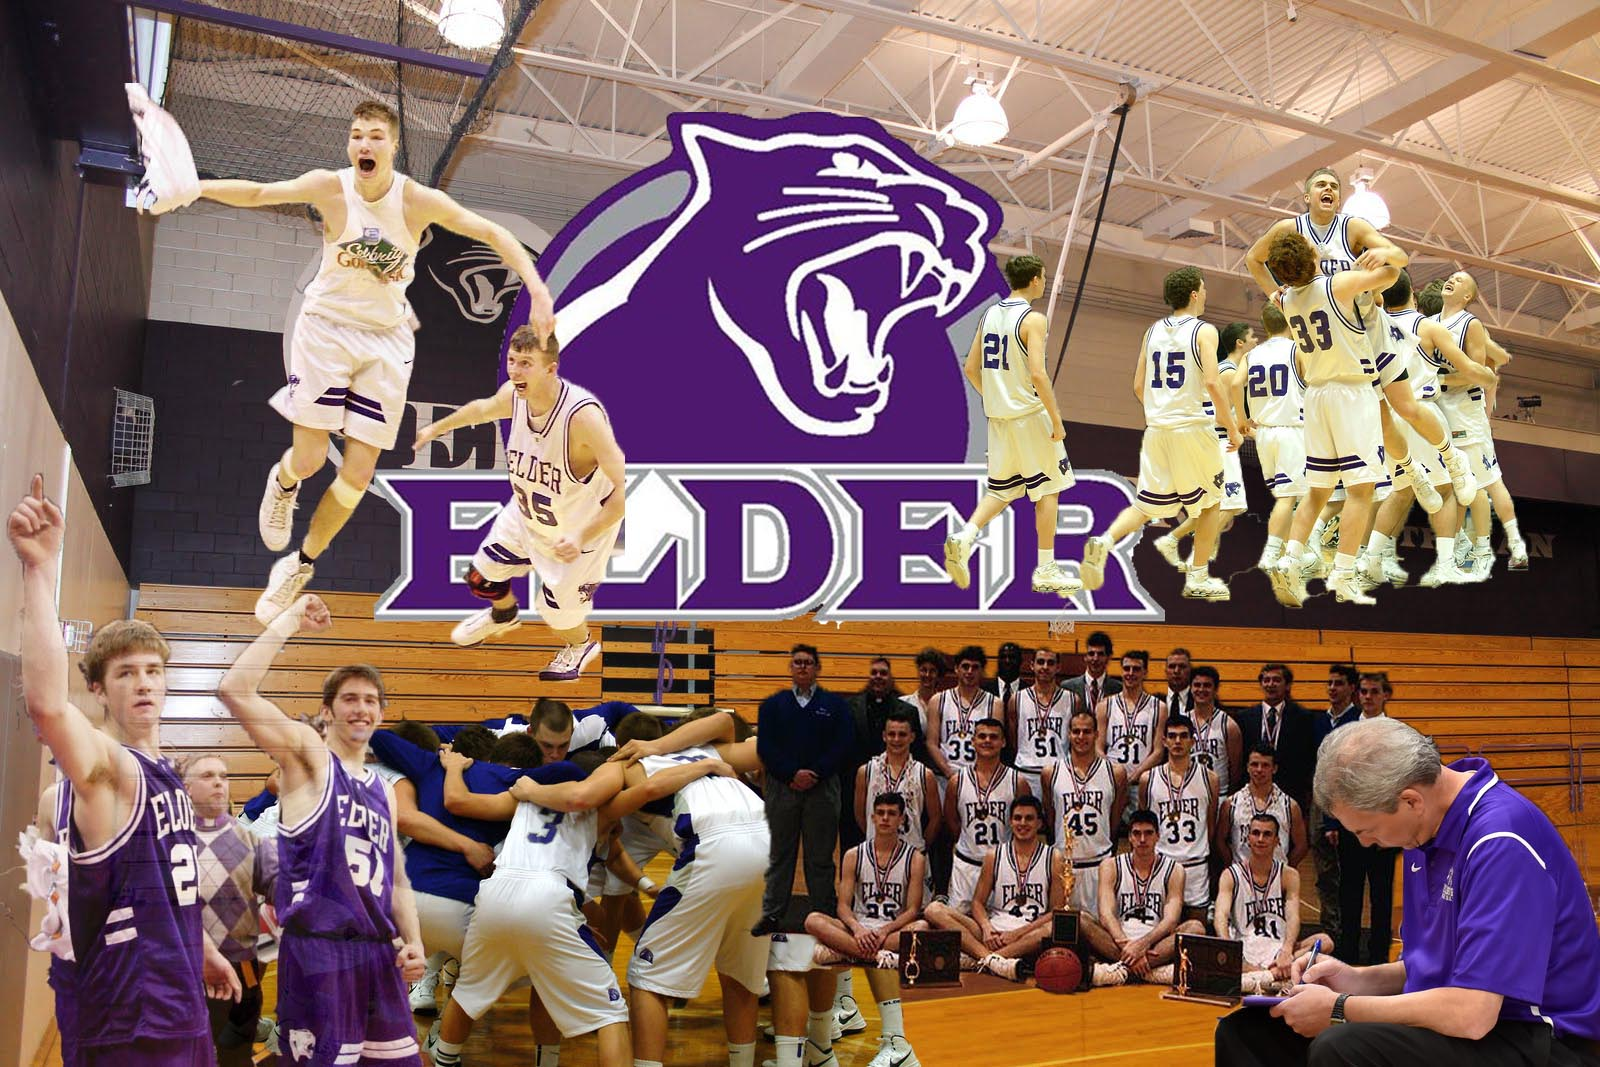 Photoshop of some of the teams throughout Coach Schoenfeld's career